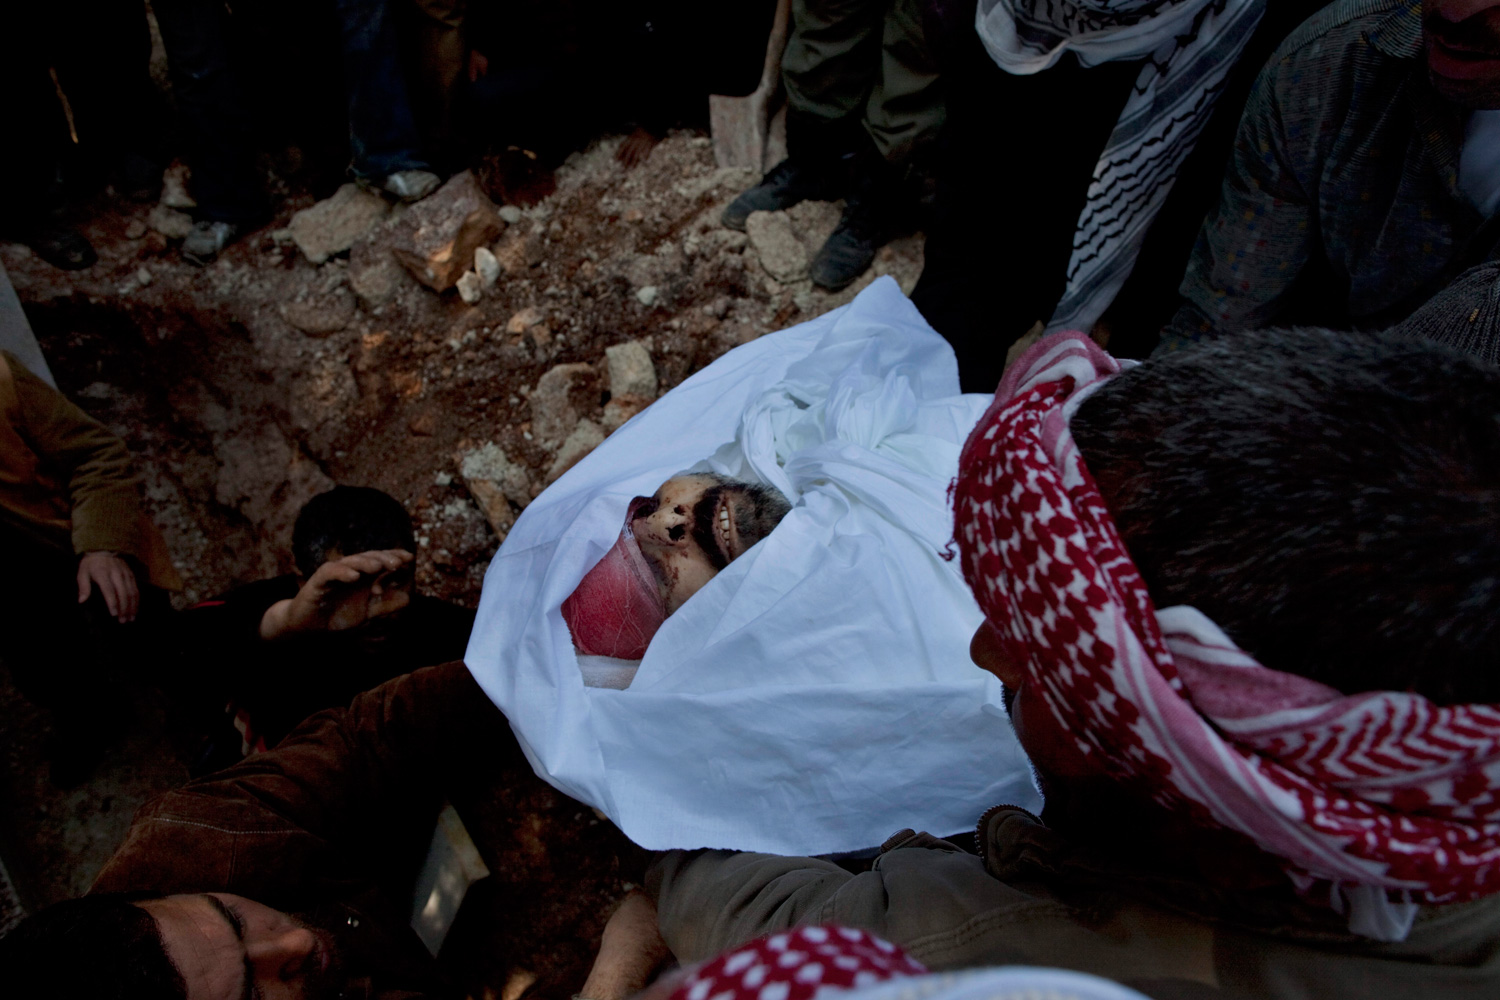 March 8, 2012. People carry the body of of Abdulaziz Abu Ahmed Khrer, killed by a Syrian Army sniper, during his funeral in Idlib, north Syria.